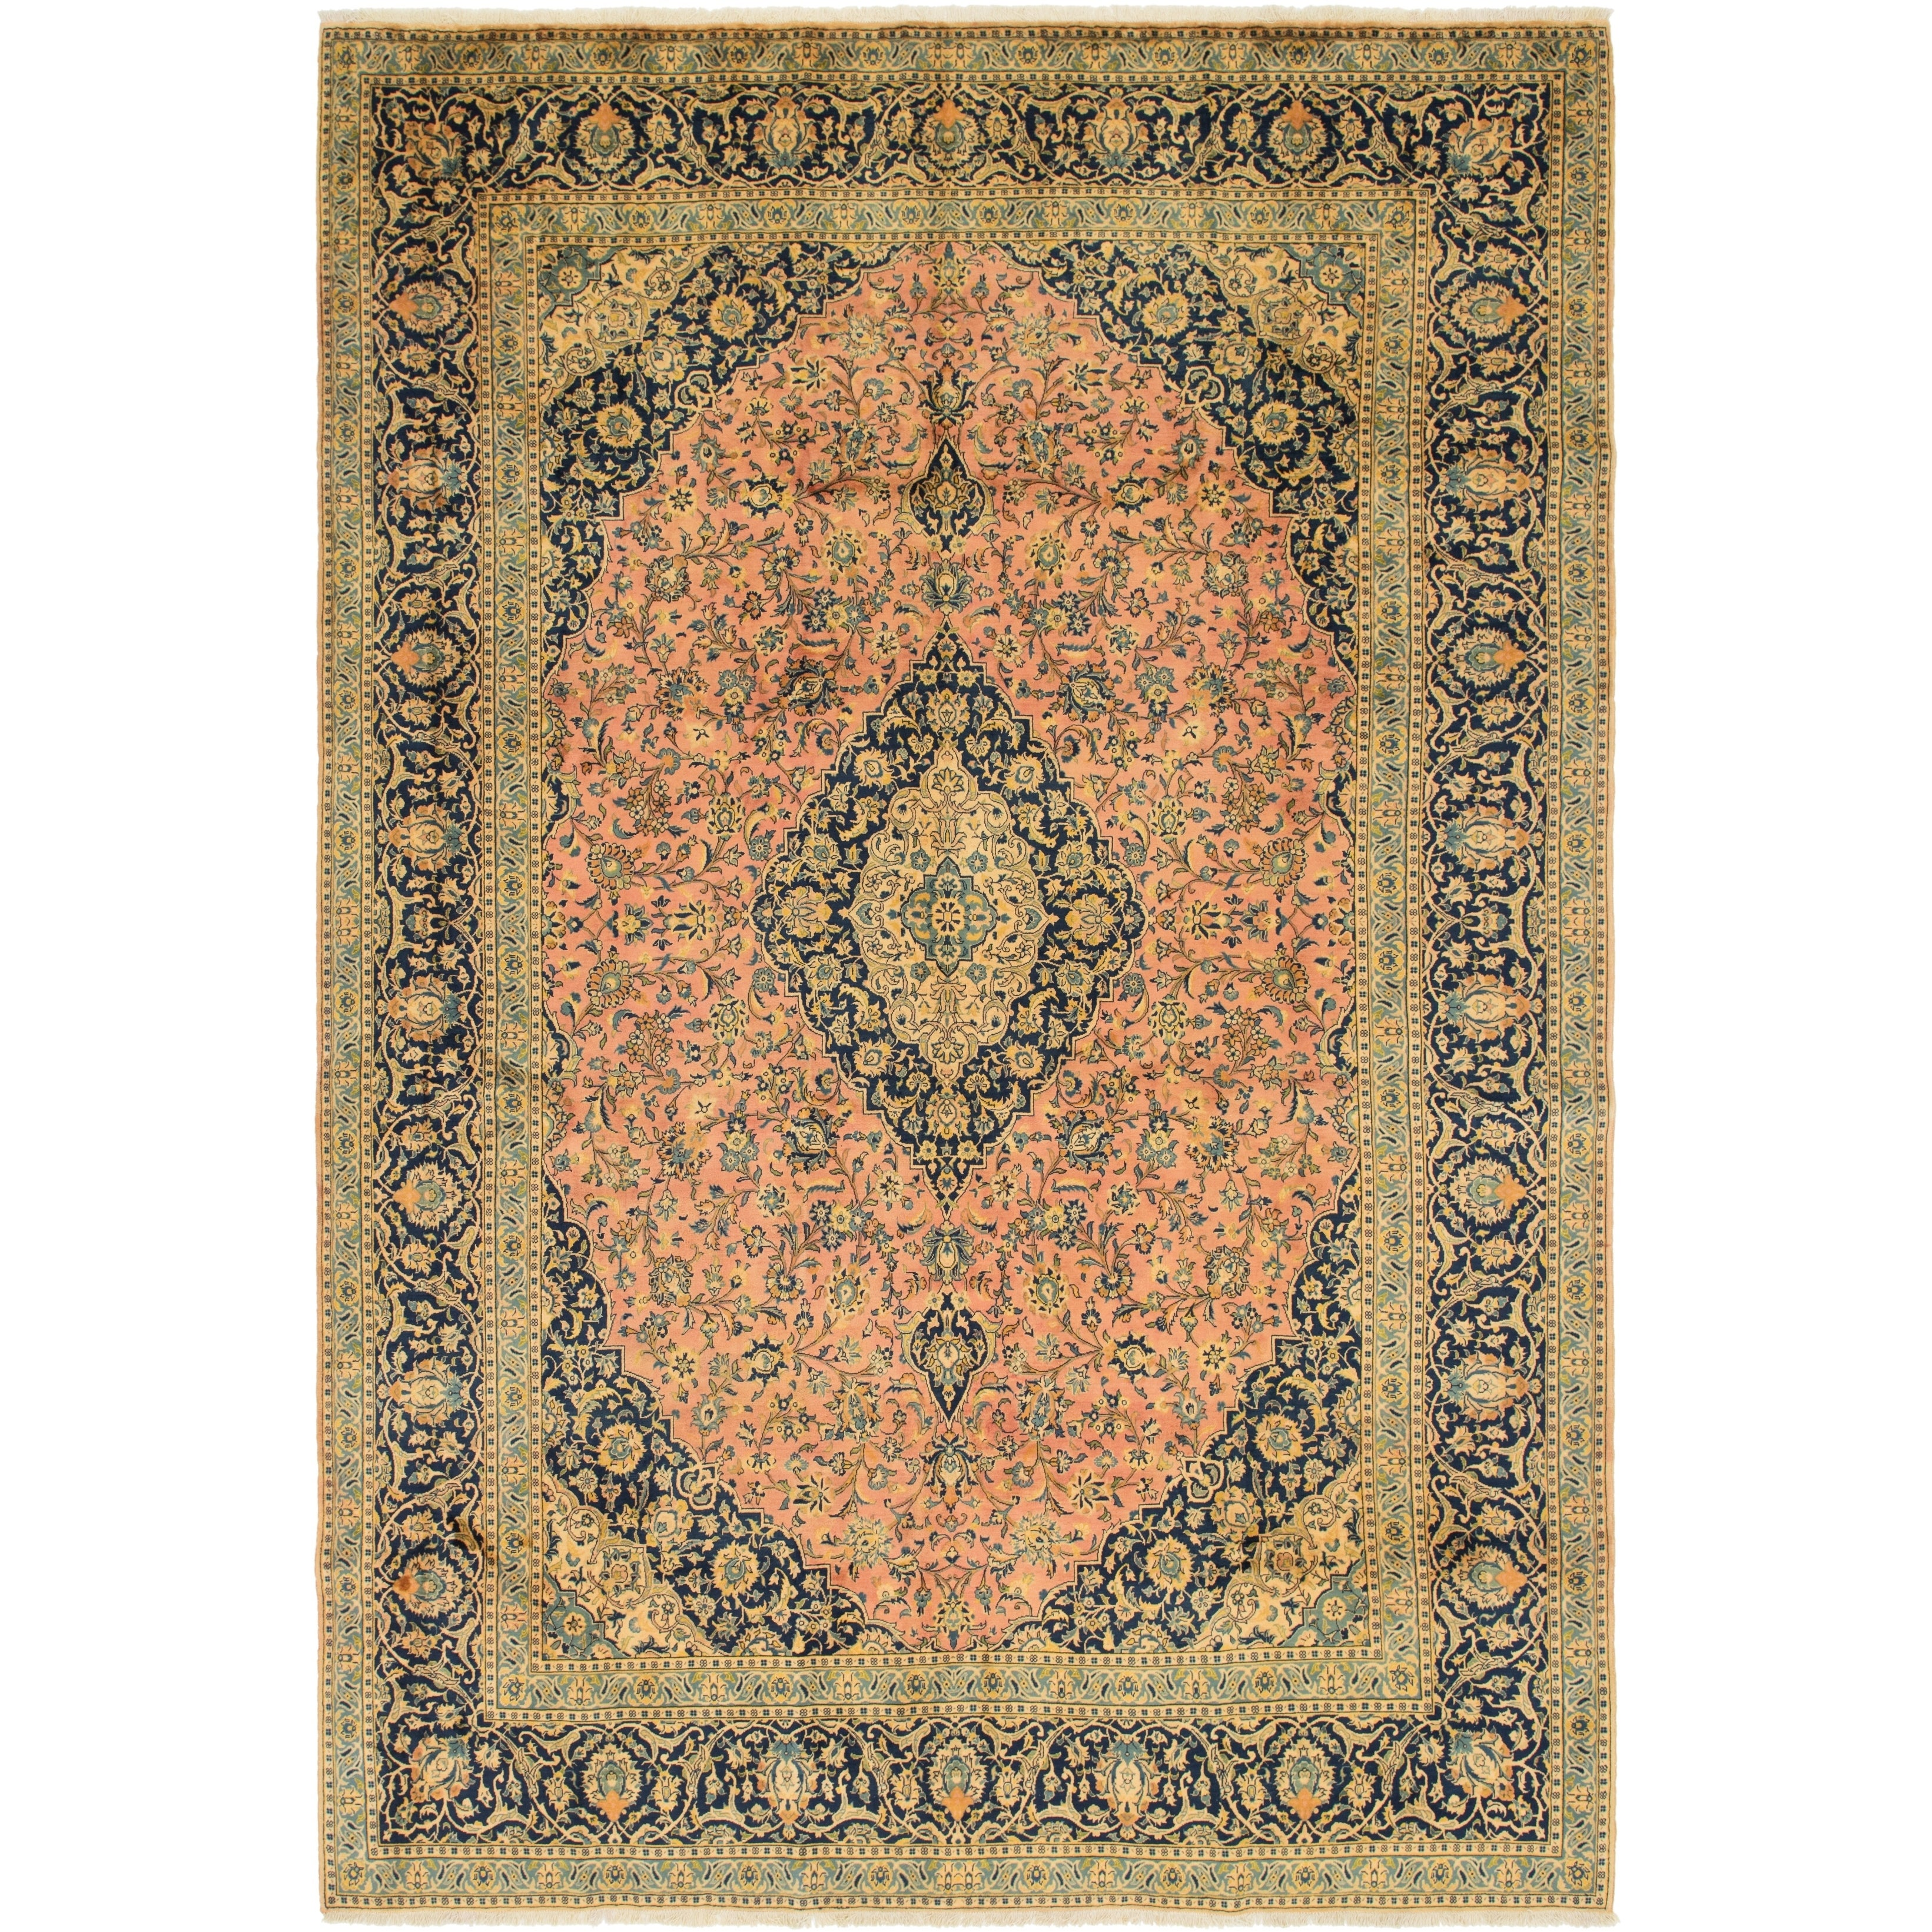 Hand Knotted Kashan Semi Antique Wool Area Rug - 9 6 x 13 10 (peach - 9 6 x 13 10)